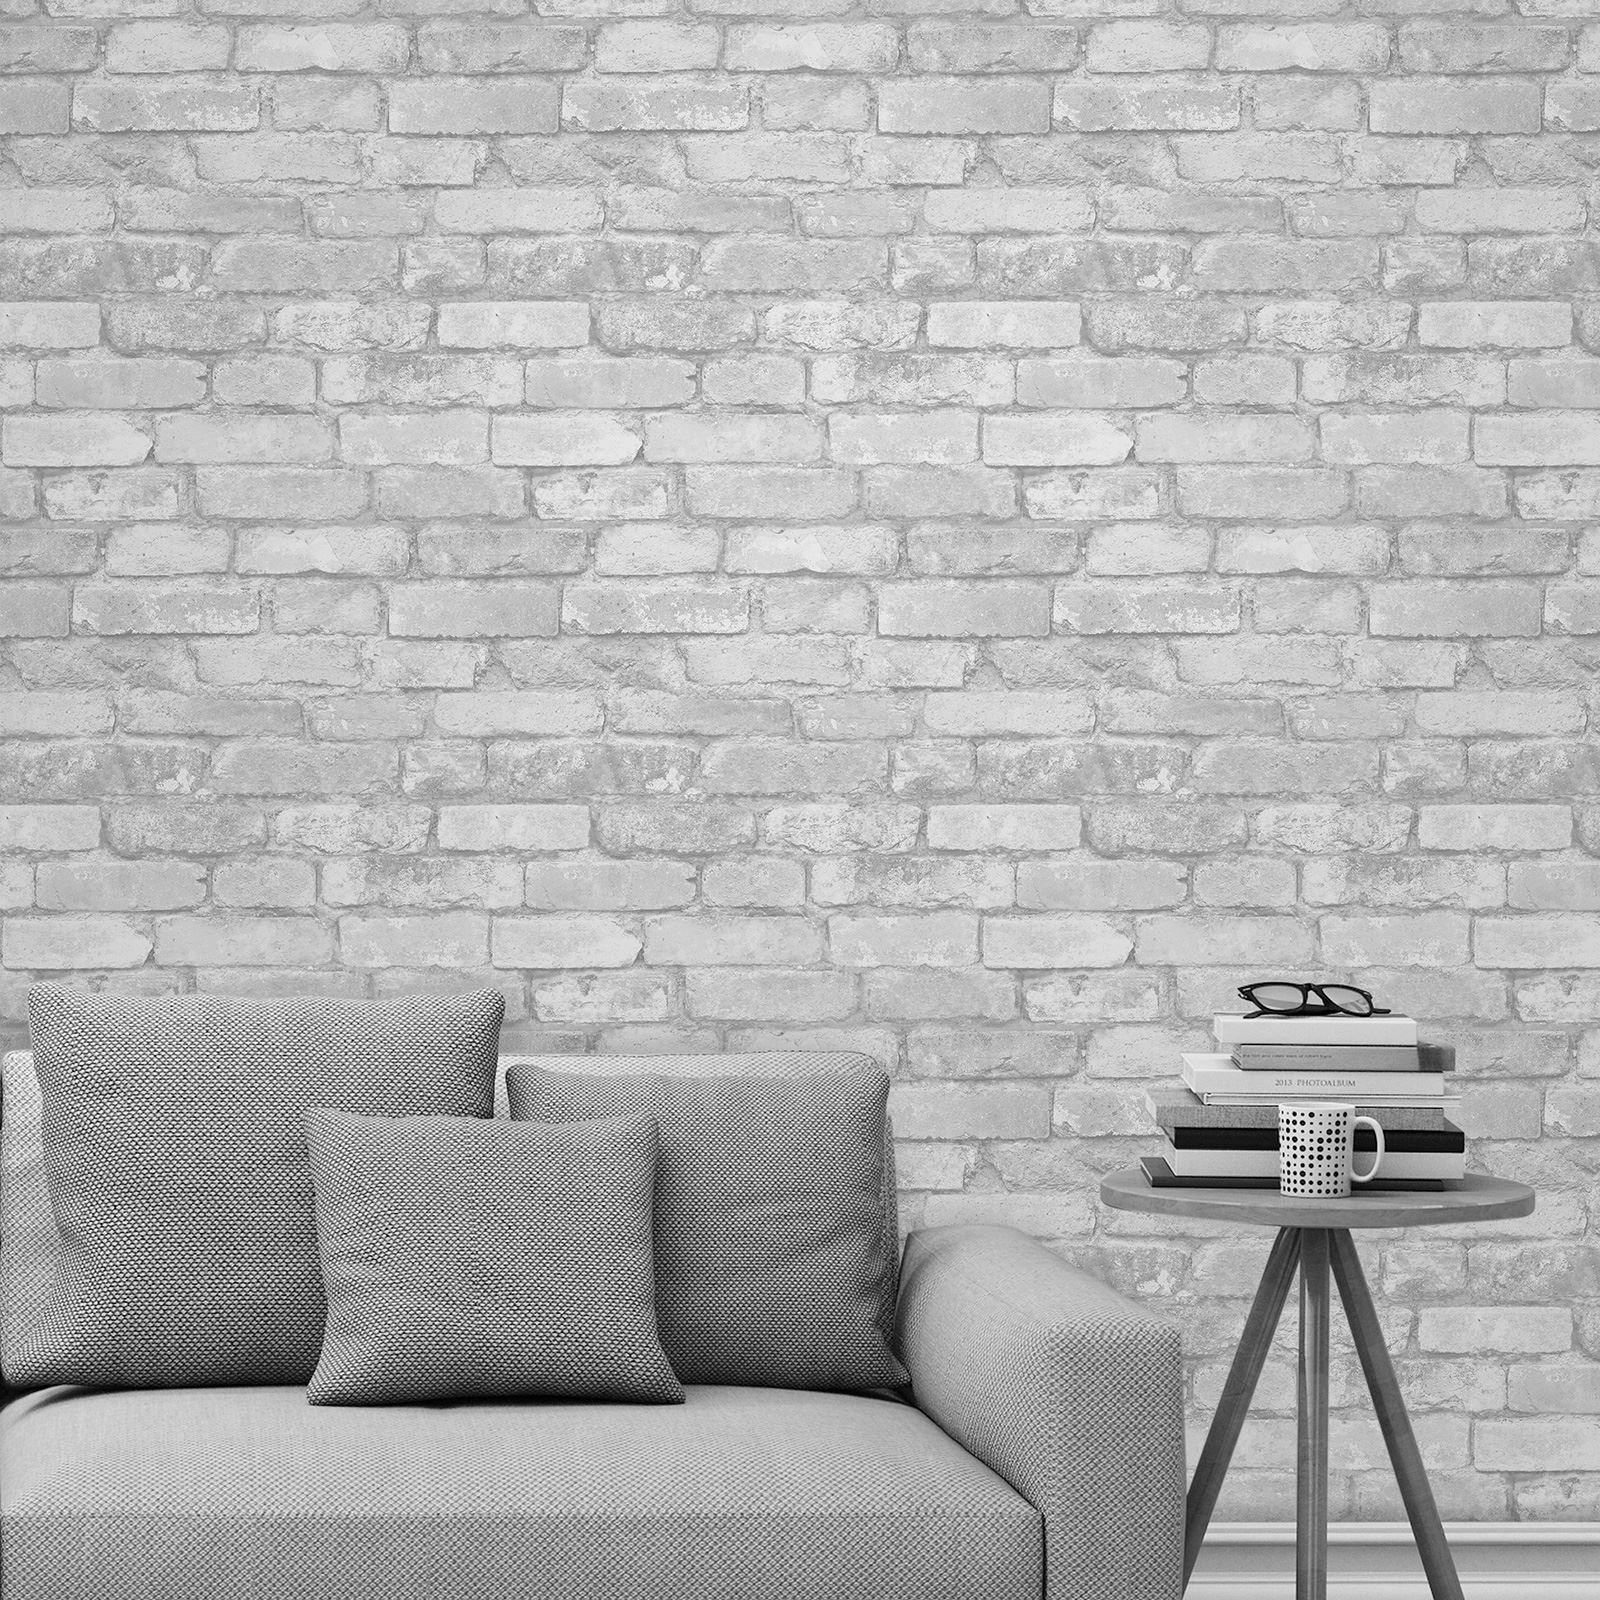 Details about WHITE BRICK EFFECT WALLPAPER - 5 STYLES - FEATURE WALL - NEW